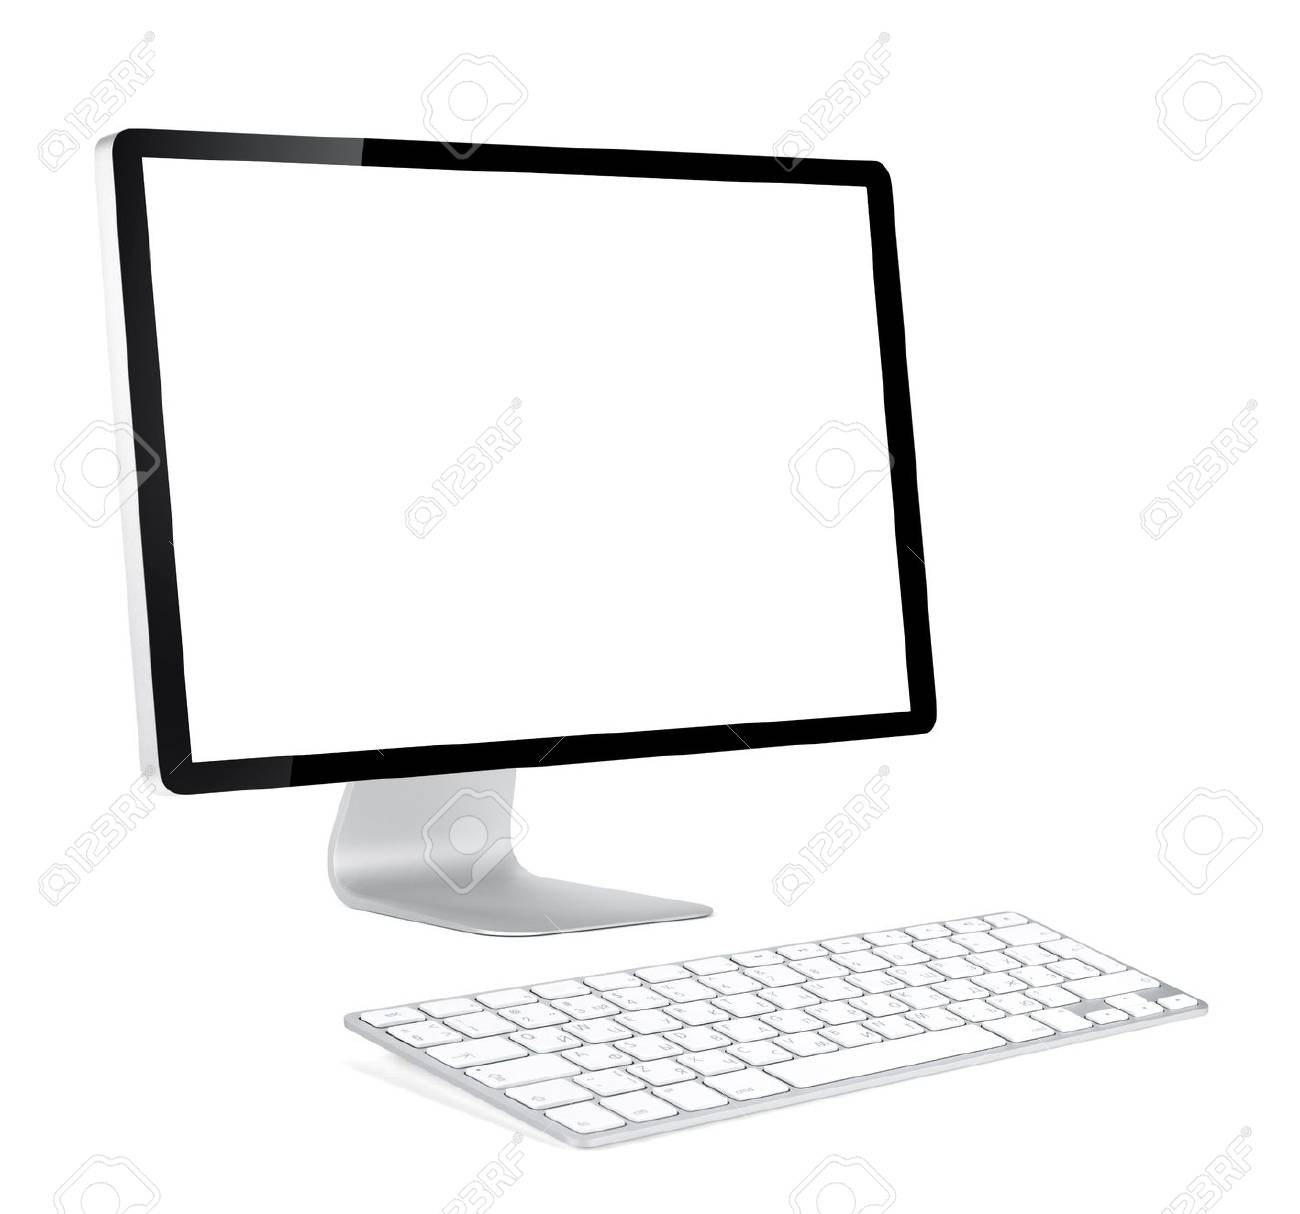 White Wireless Computer Monitors Data Wiring Diagram How To Make A Sixtiesstyle 40w Audio Amplifier Circuit Display With Blank Screen And Keyboard Front Rh 123rf Com Monitor Connection Best